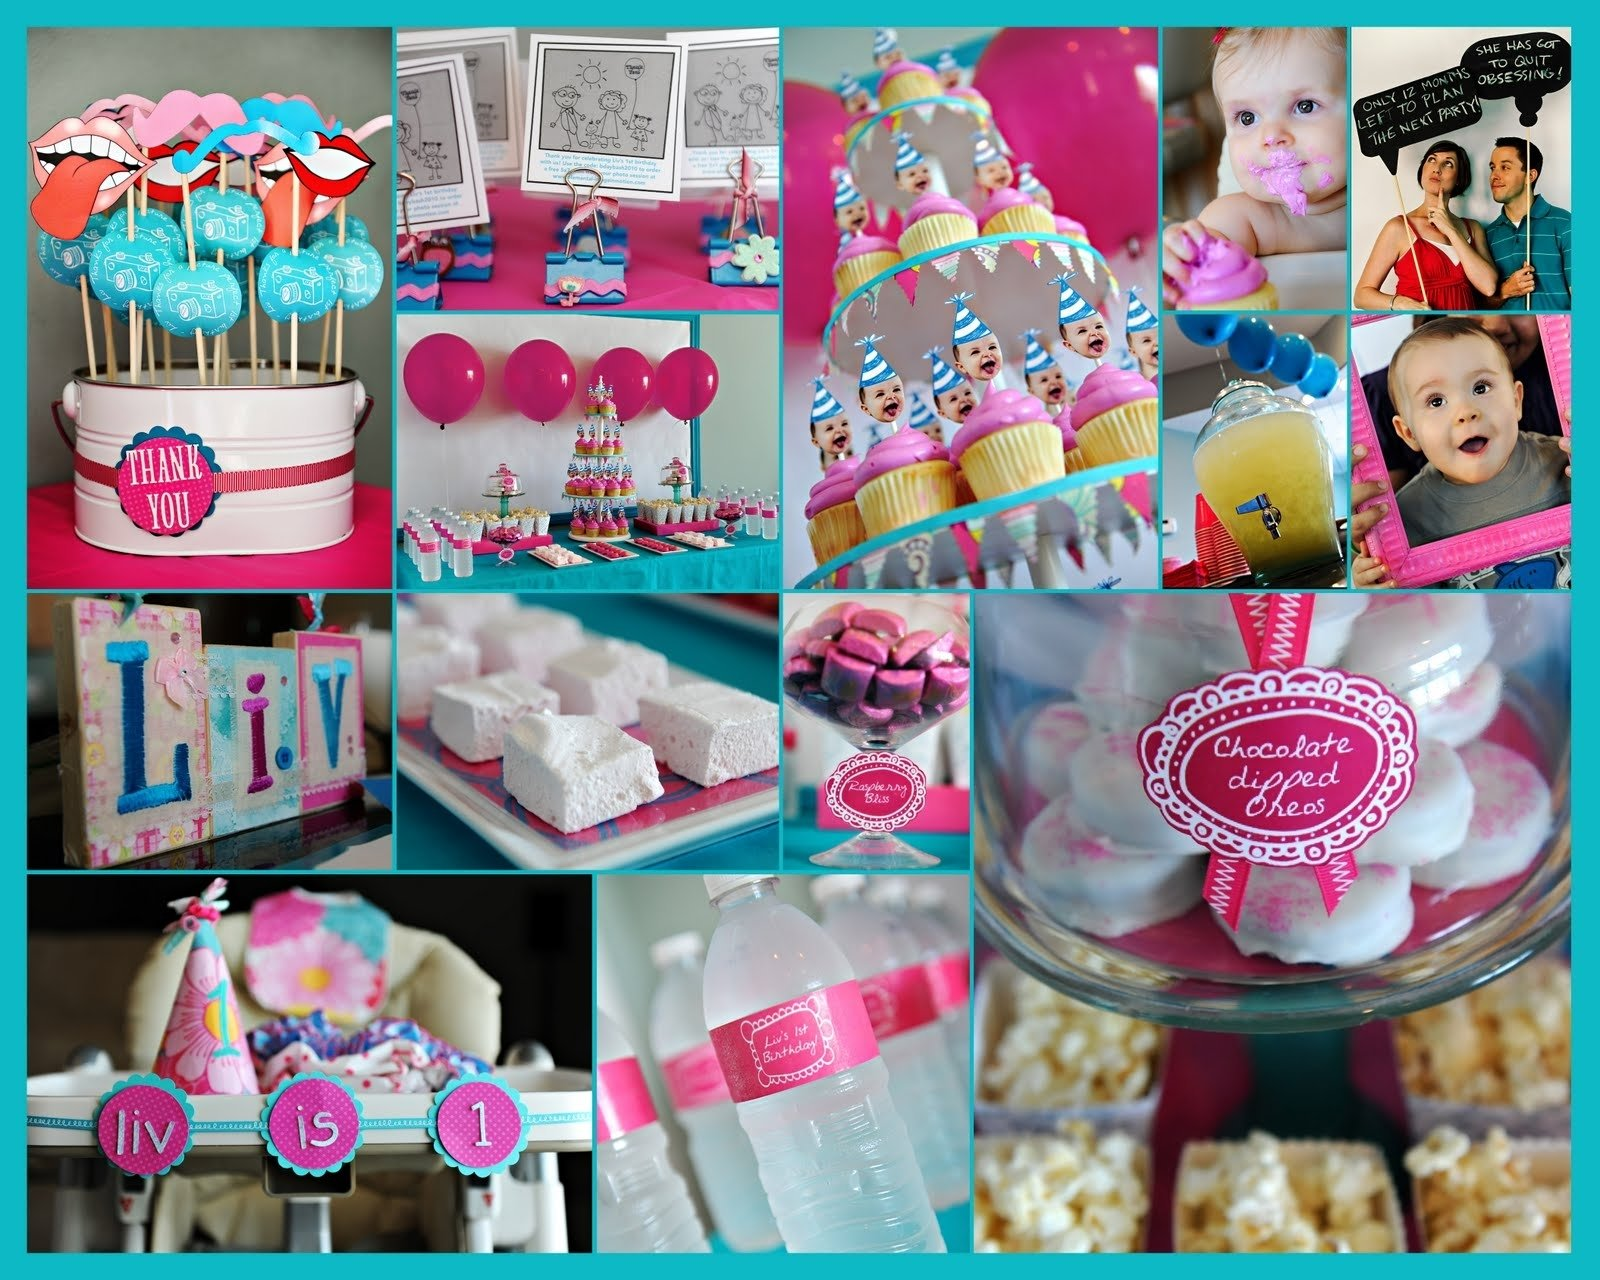 10 Fabulous Birthday Ideas For A 13 Year Old Girl themes birthday a 2 year old birthday party ideas with 2 year old 13 2020